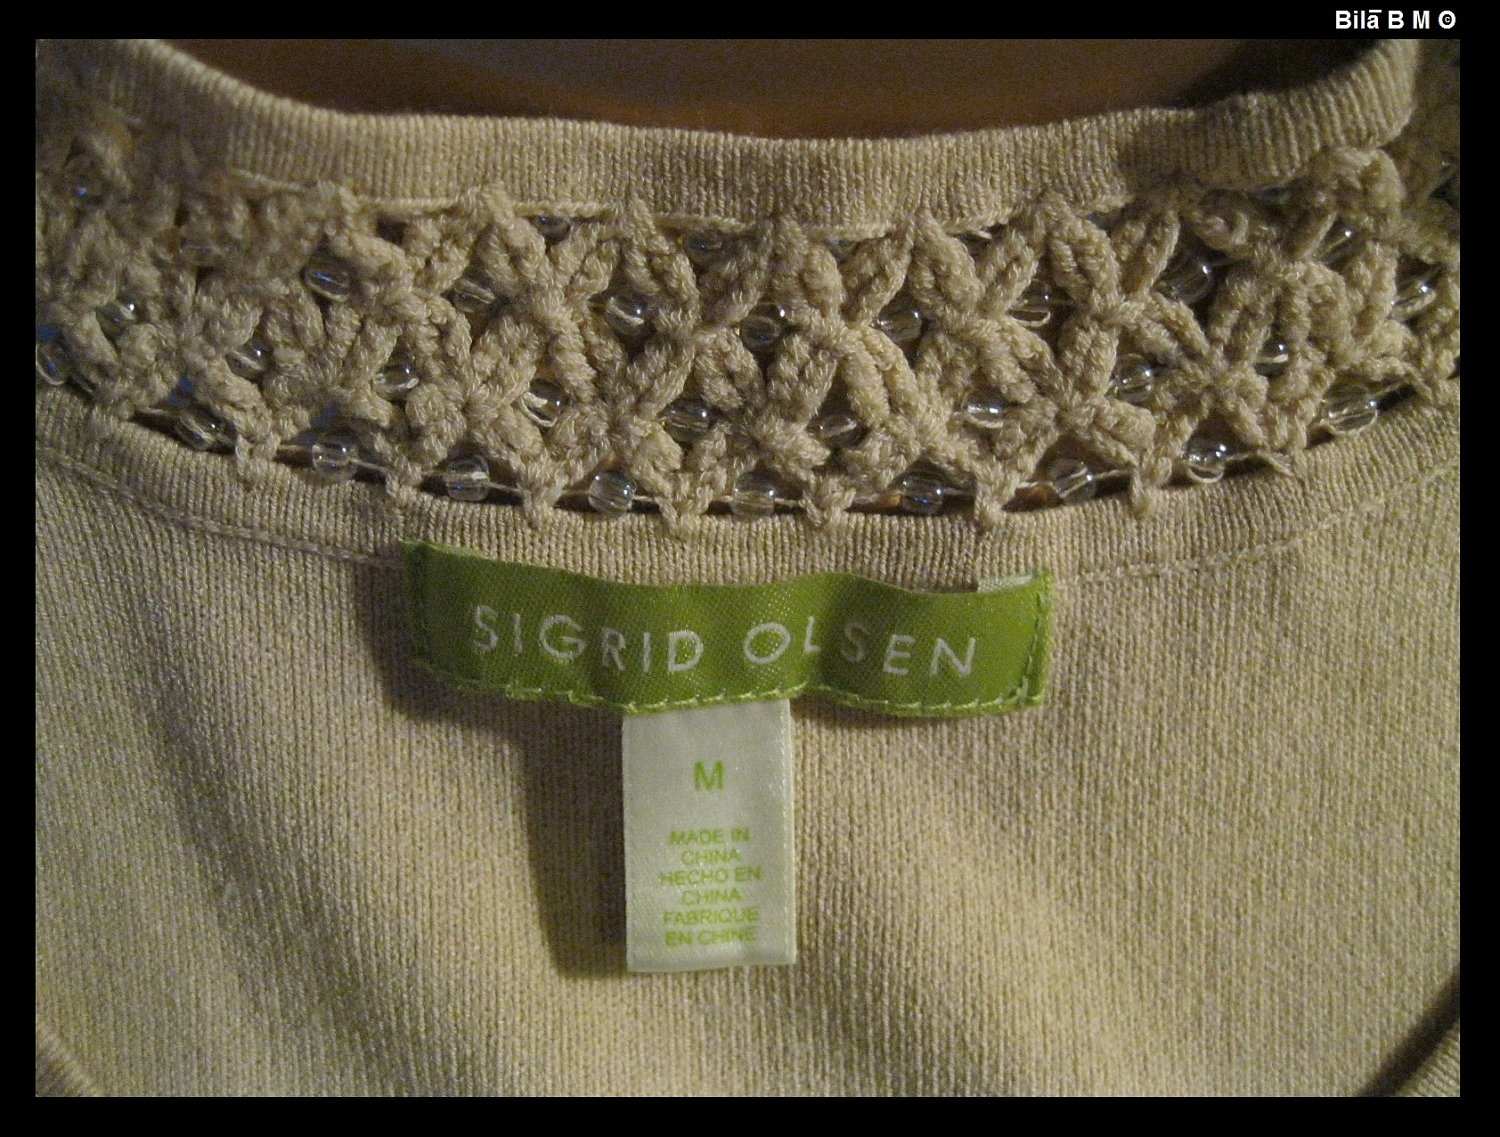 SIGRID OLSEN Knit Top with Beaded Neckline - Size Medium - FREE SHIPPING image 5